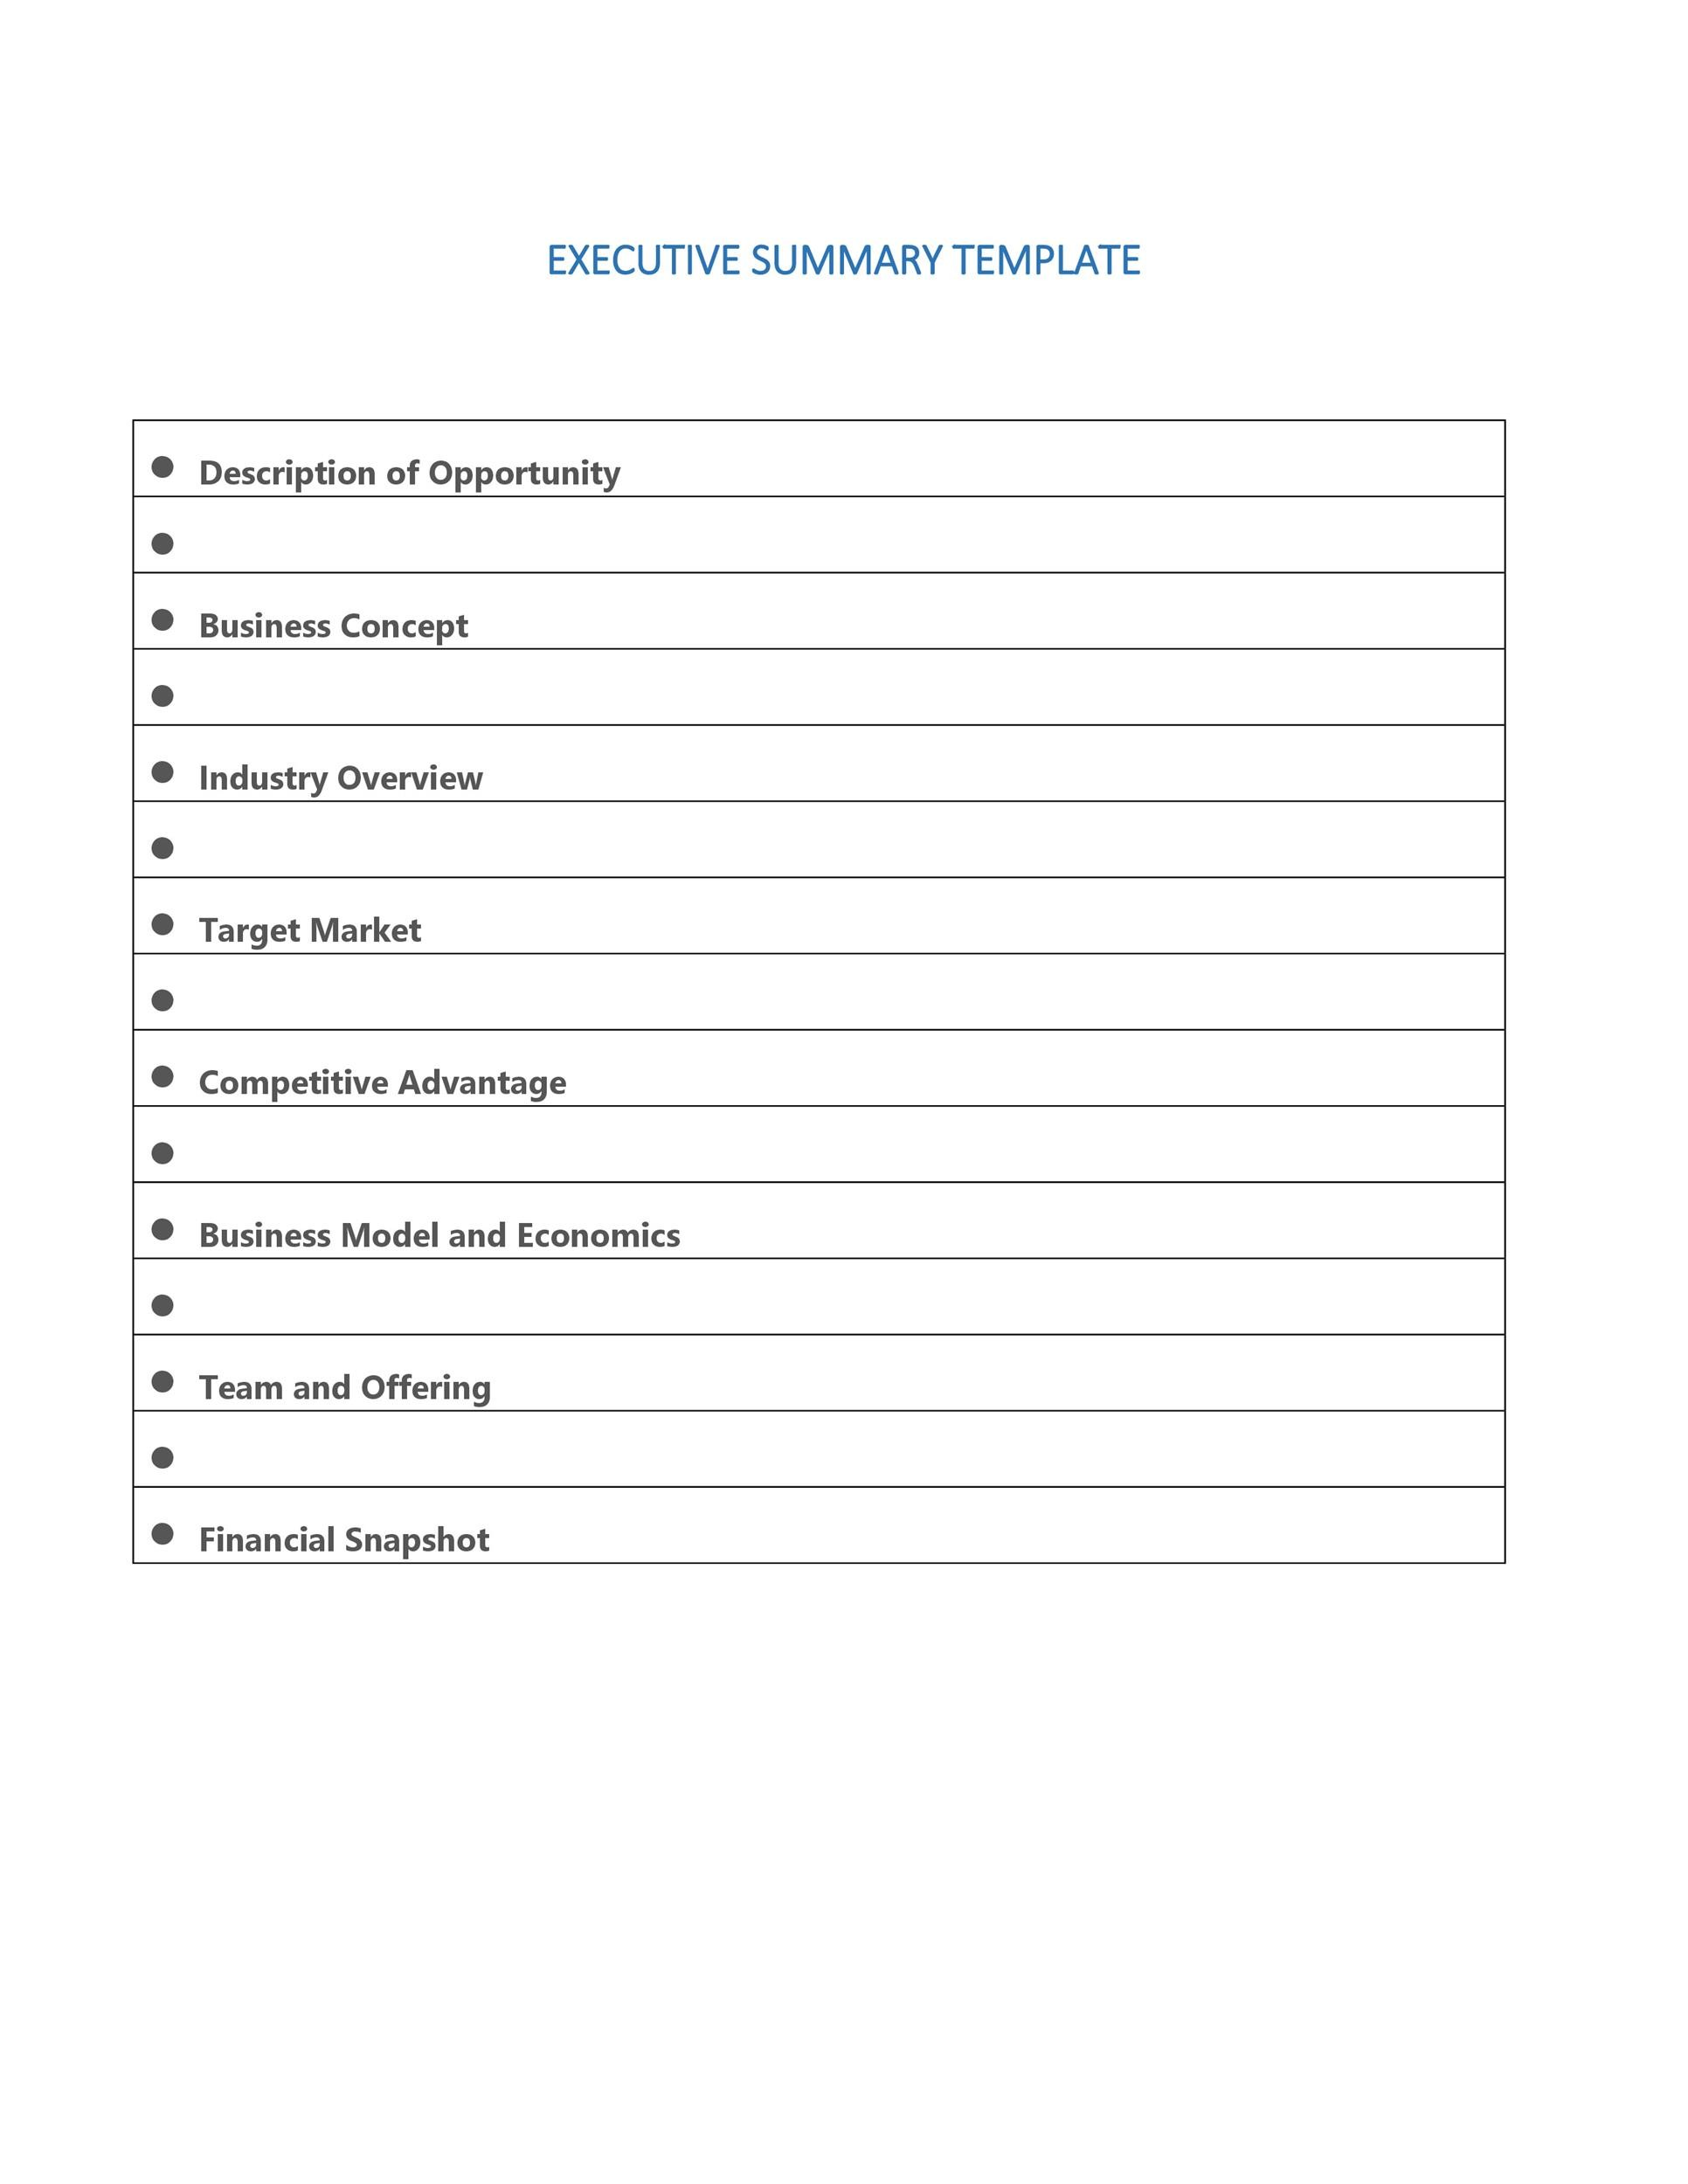 Free Executive Summary Template 19